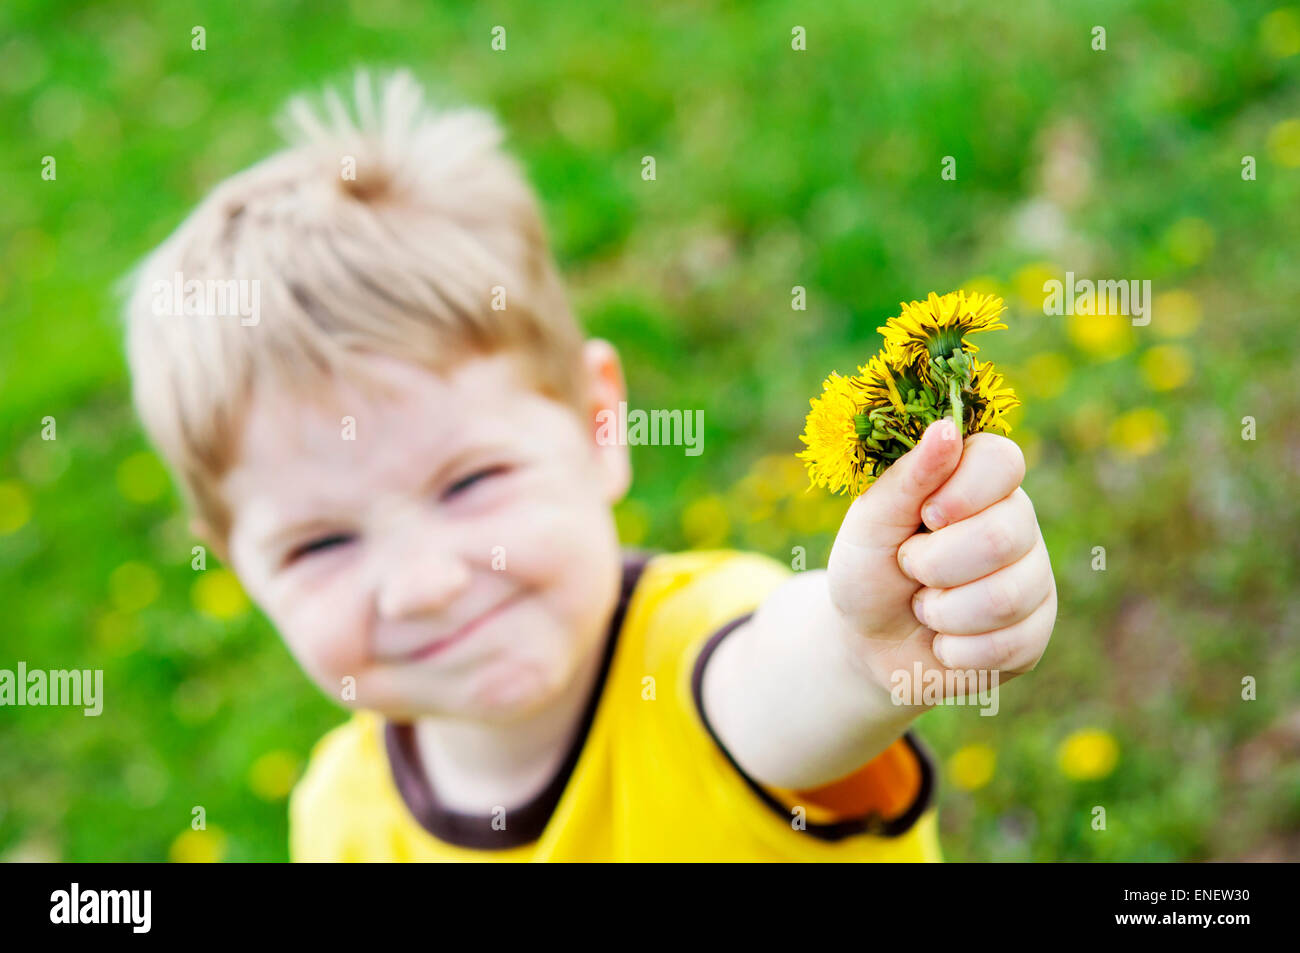 Boy giving gift de fleurs de pissenlit Photo Stock